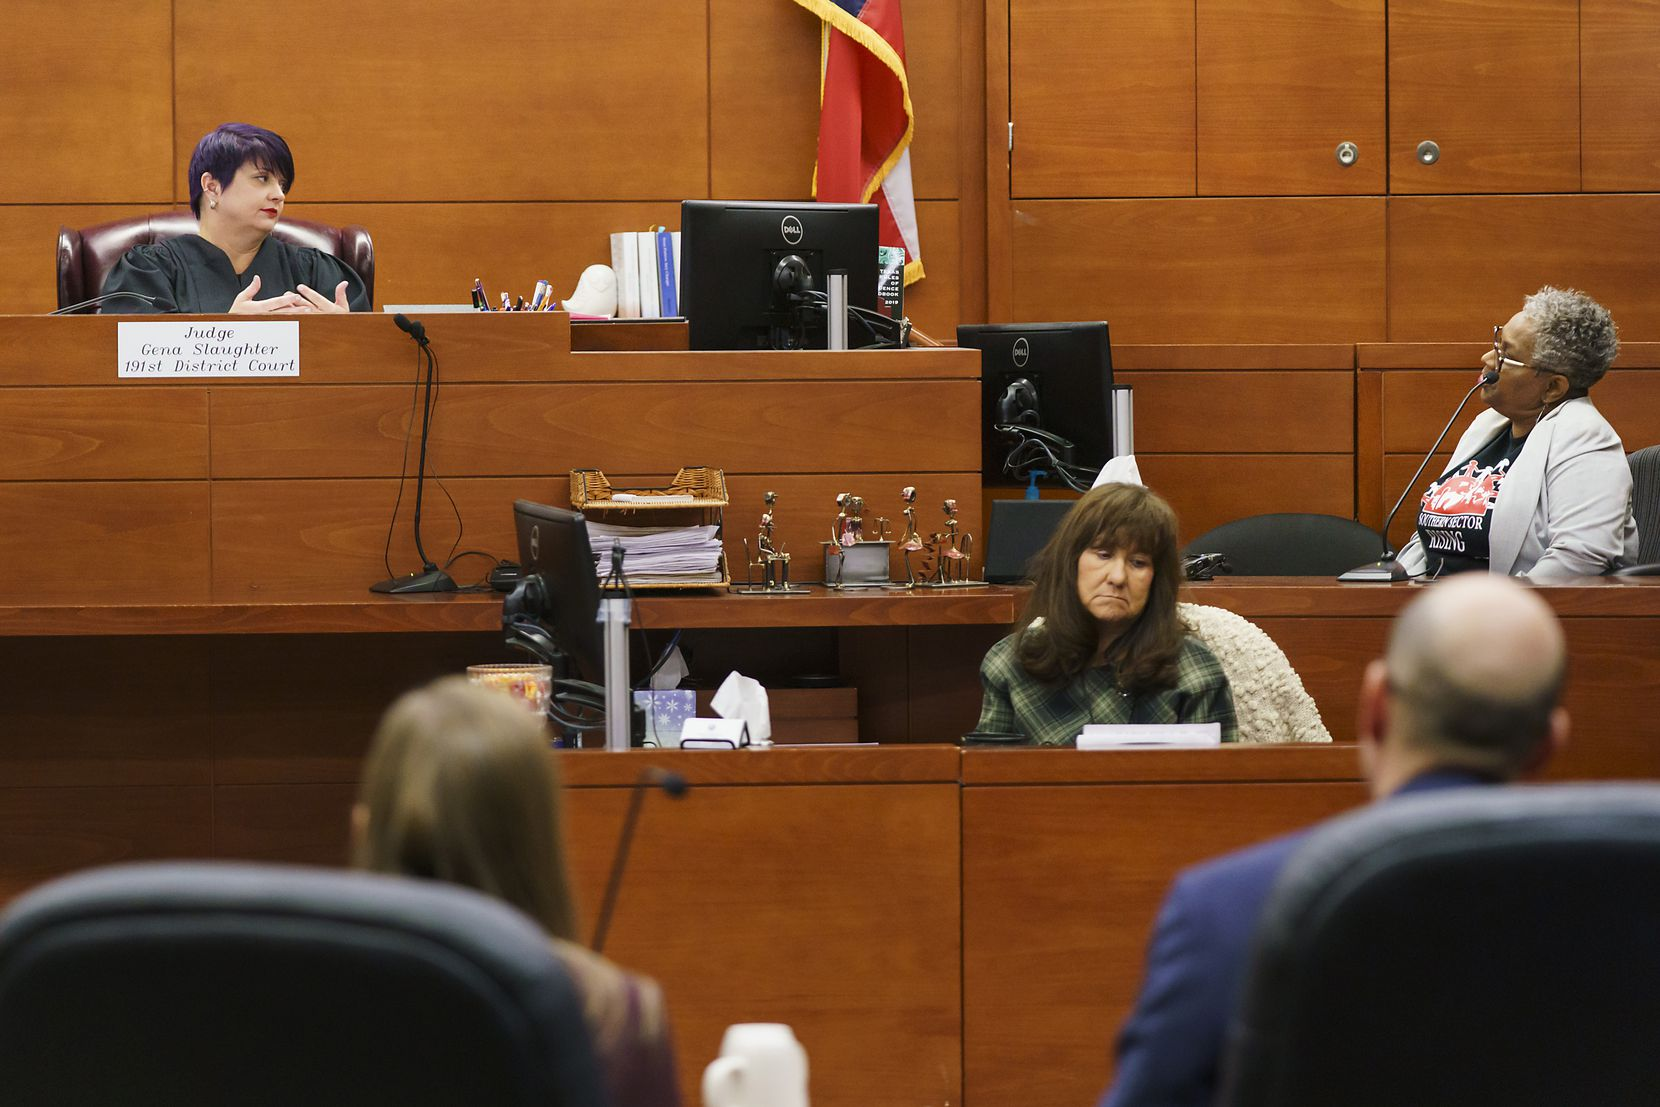 Marsha Jackson, right, is questioned by state District Judge Gena Slaughter, left, during a contempt hearing at the George L. Allen Sr. Courts Building on Friday.